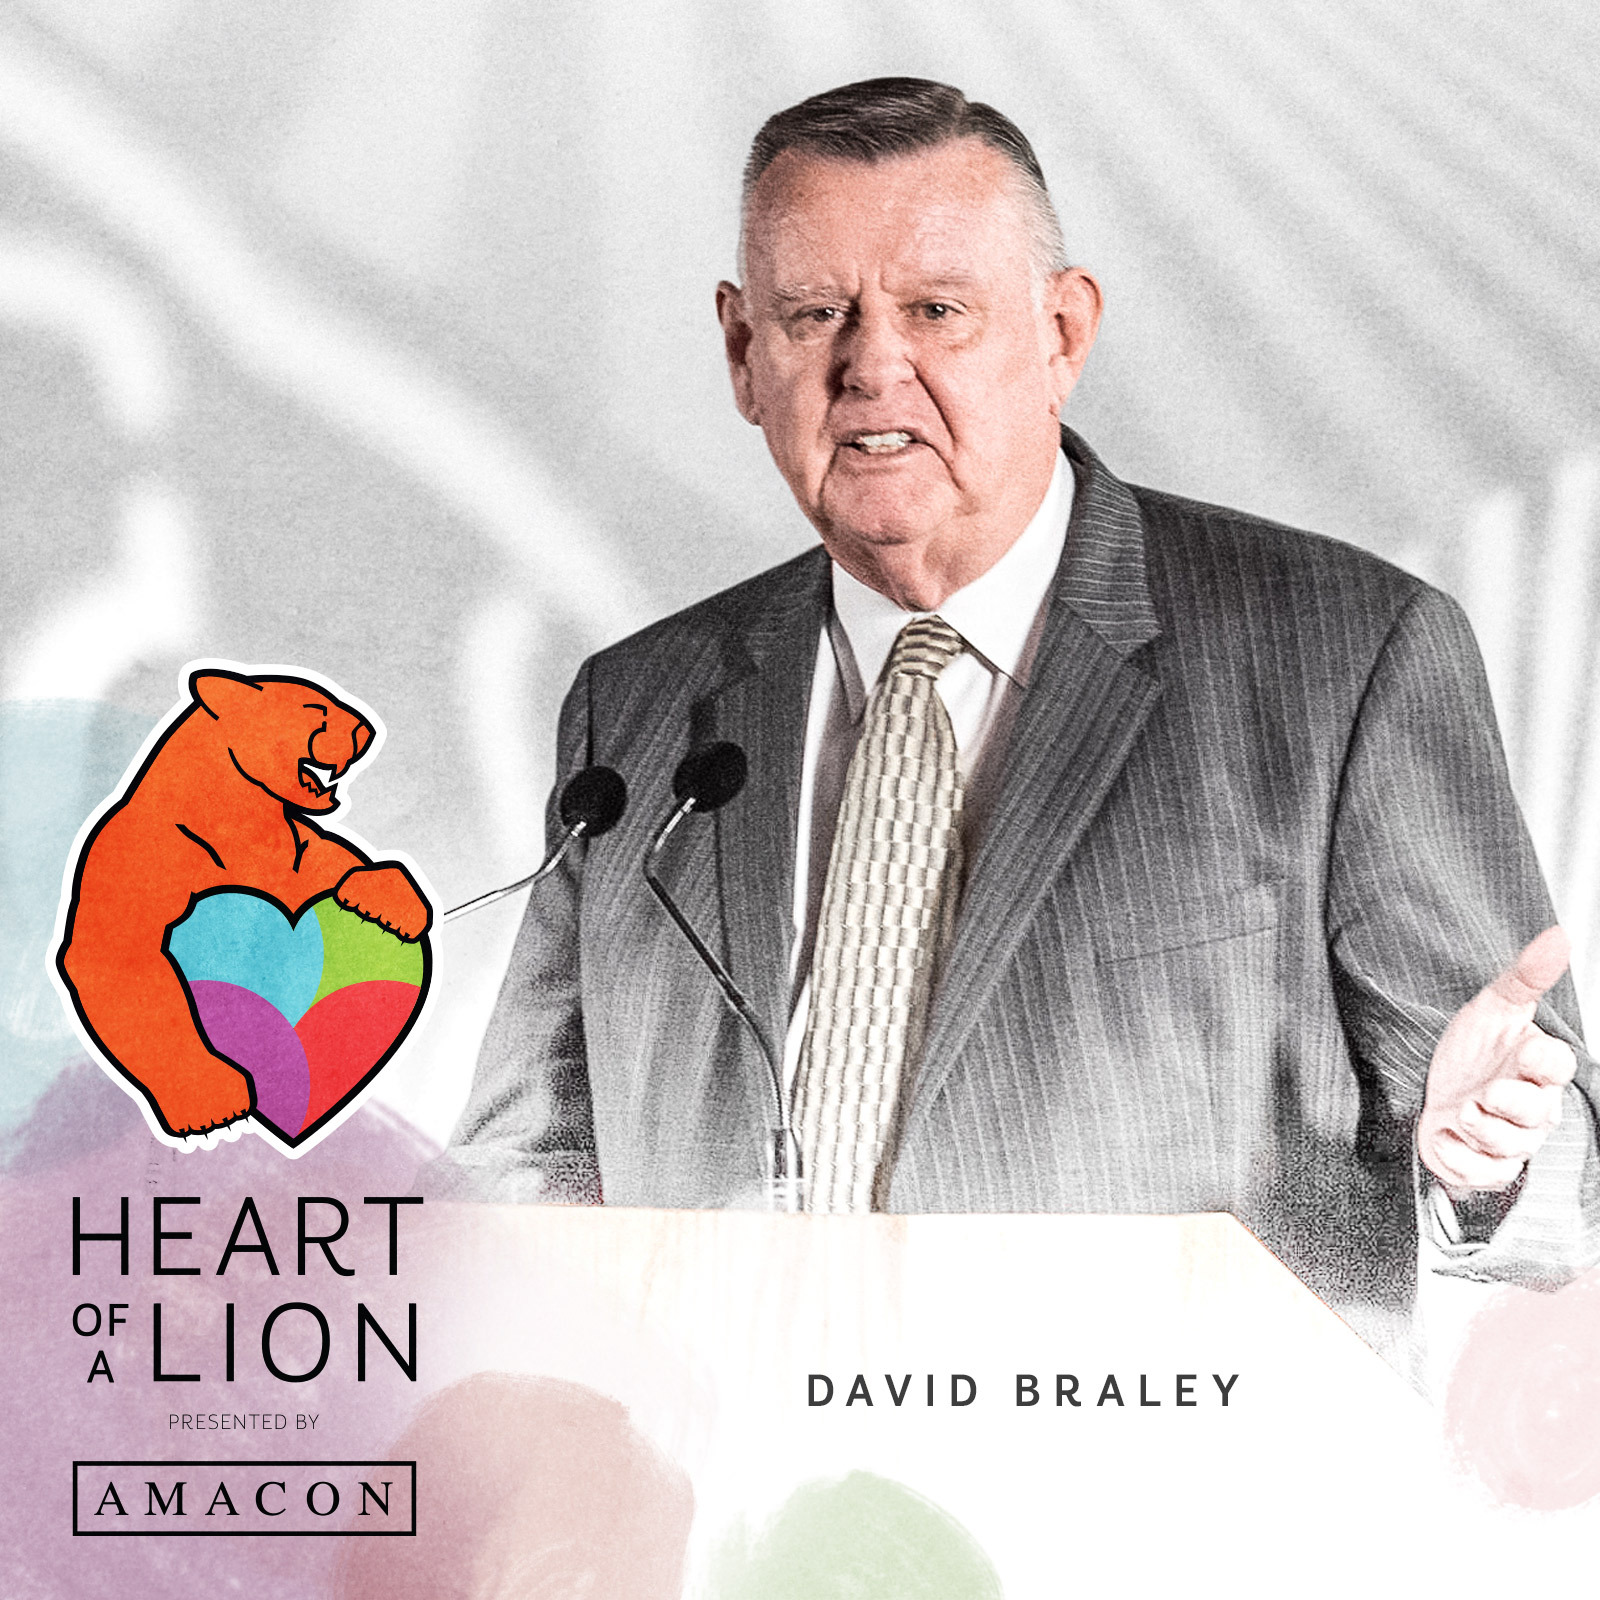 David Braley - Heart of a Lion Heroes Award Recipient